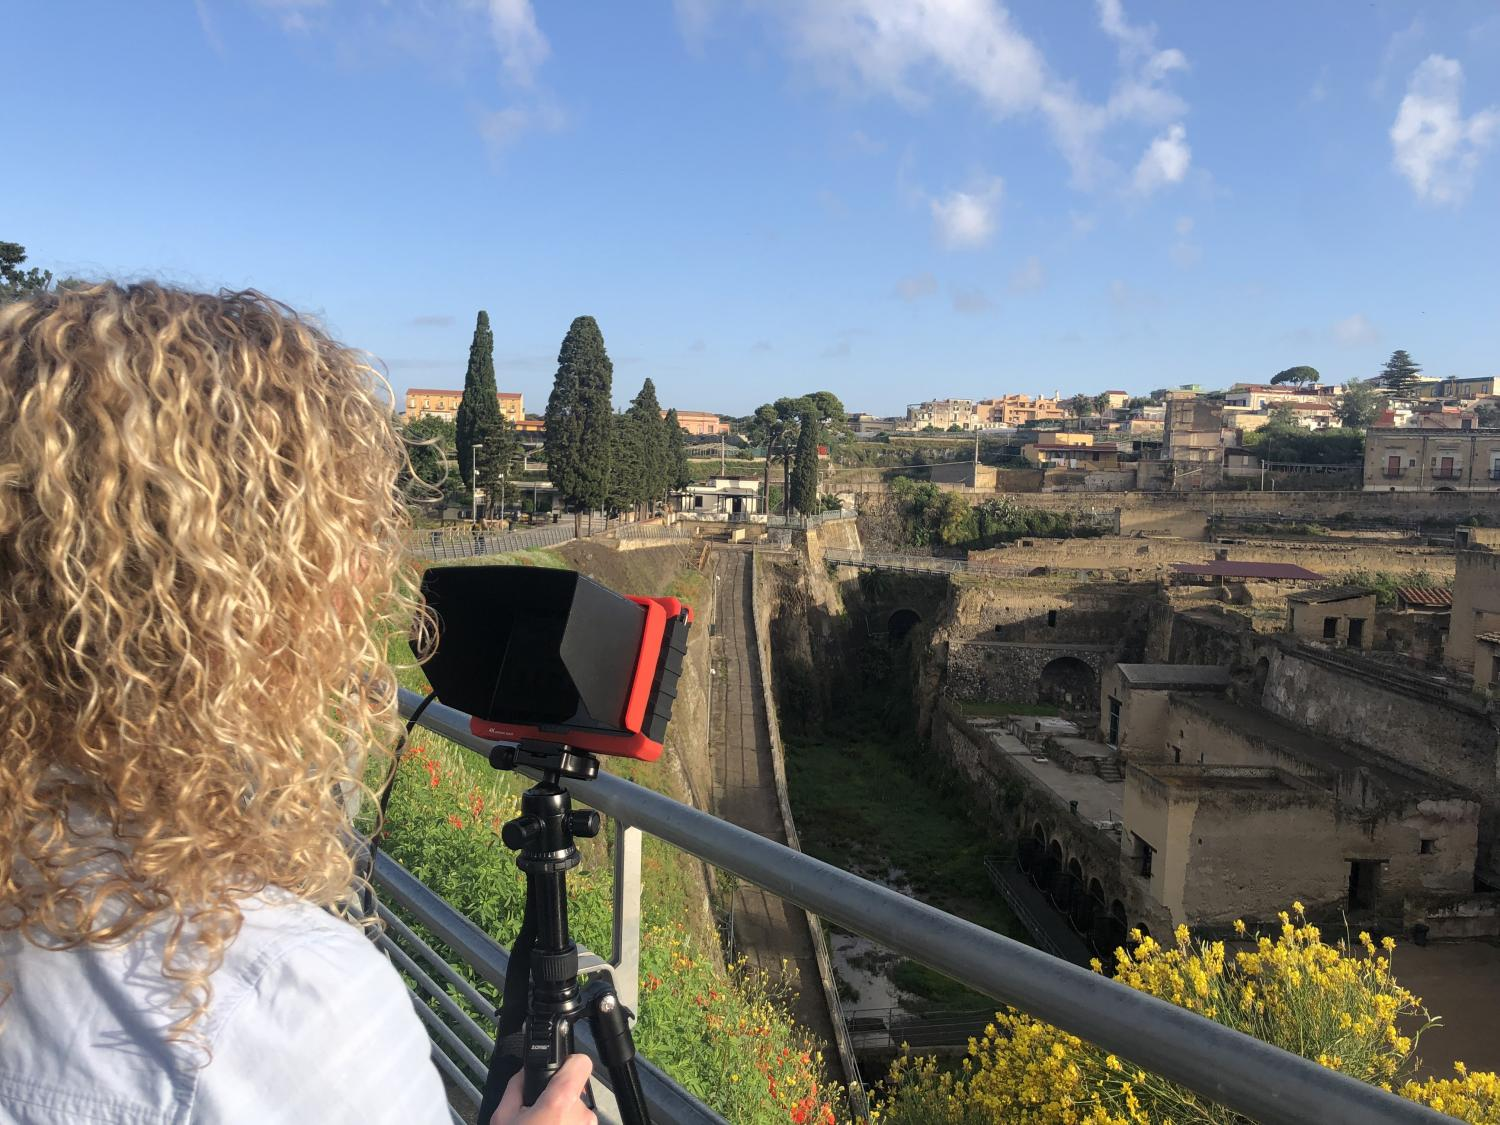 Watching the shot as the drone operator flies over the town of Herculaneum